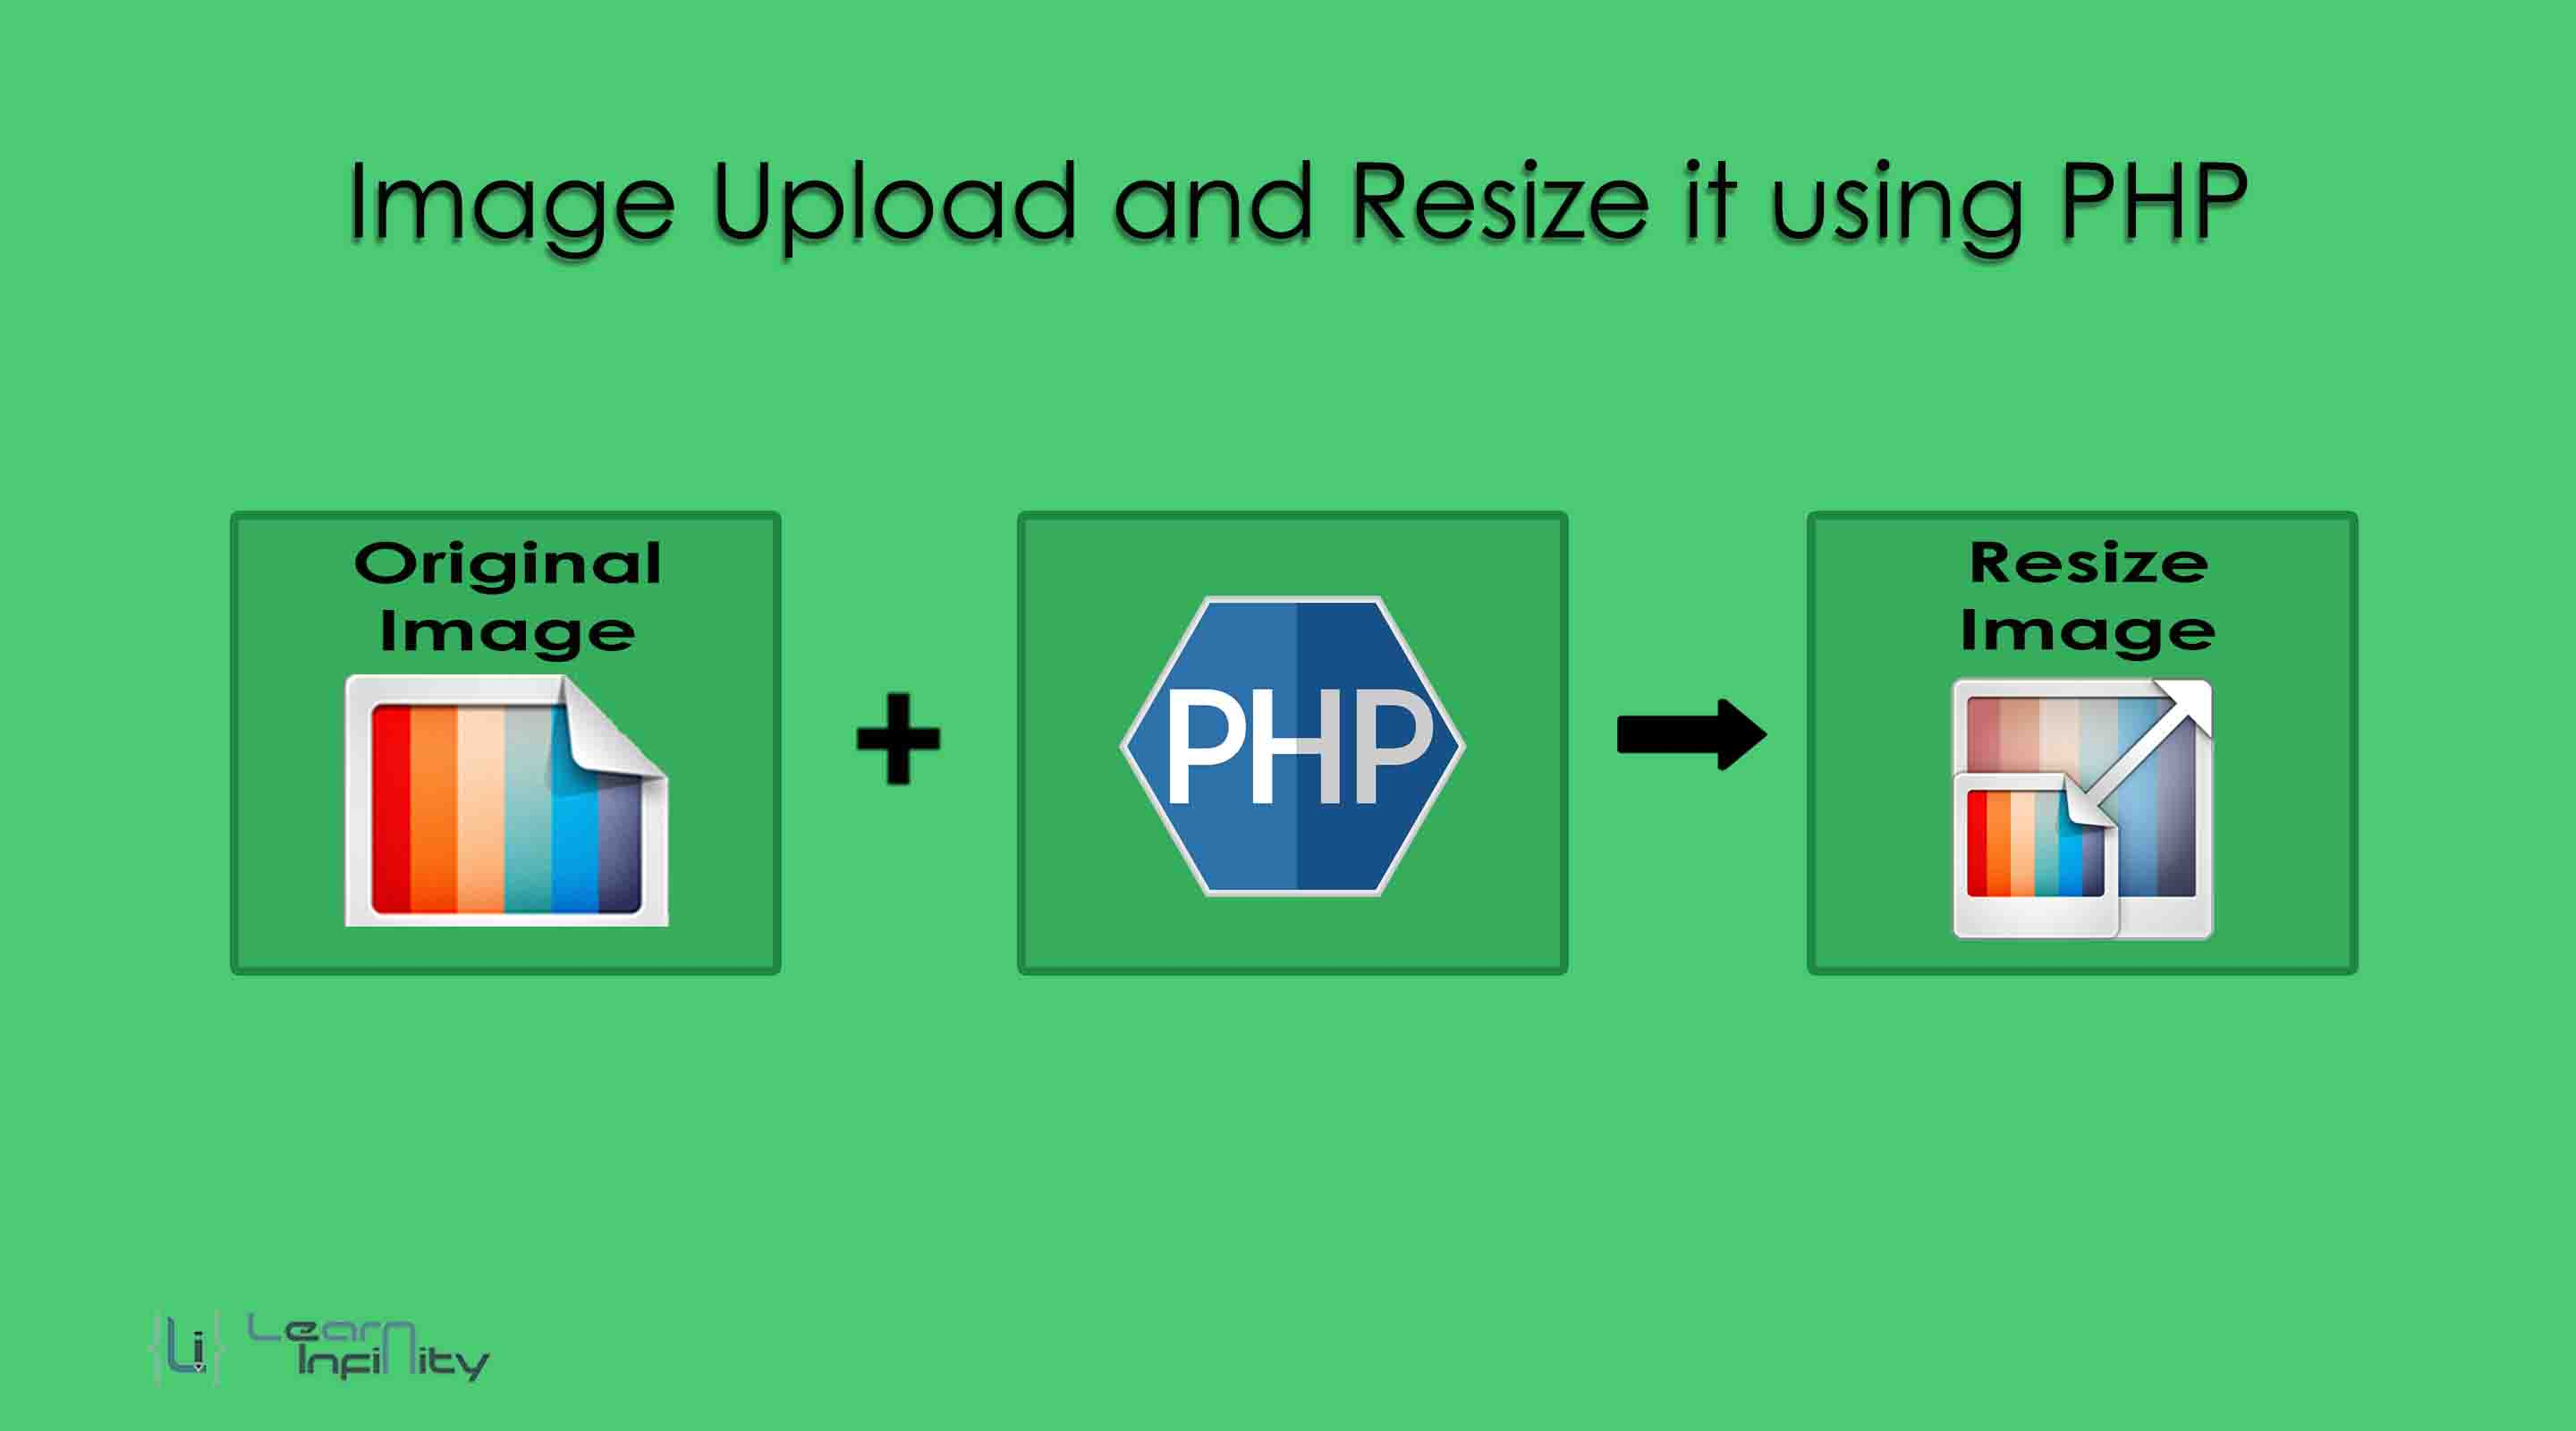 Image Upload and Resize it using PHP